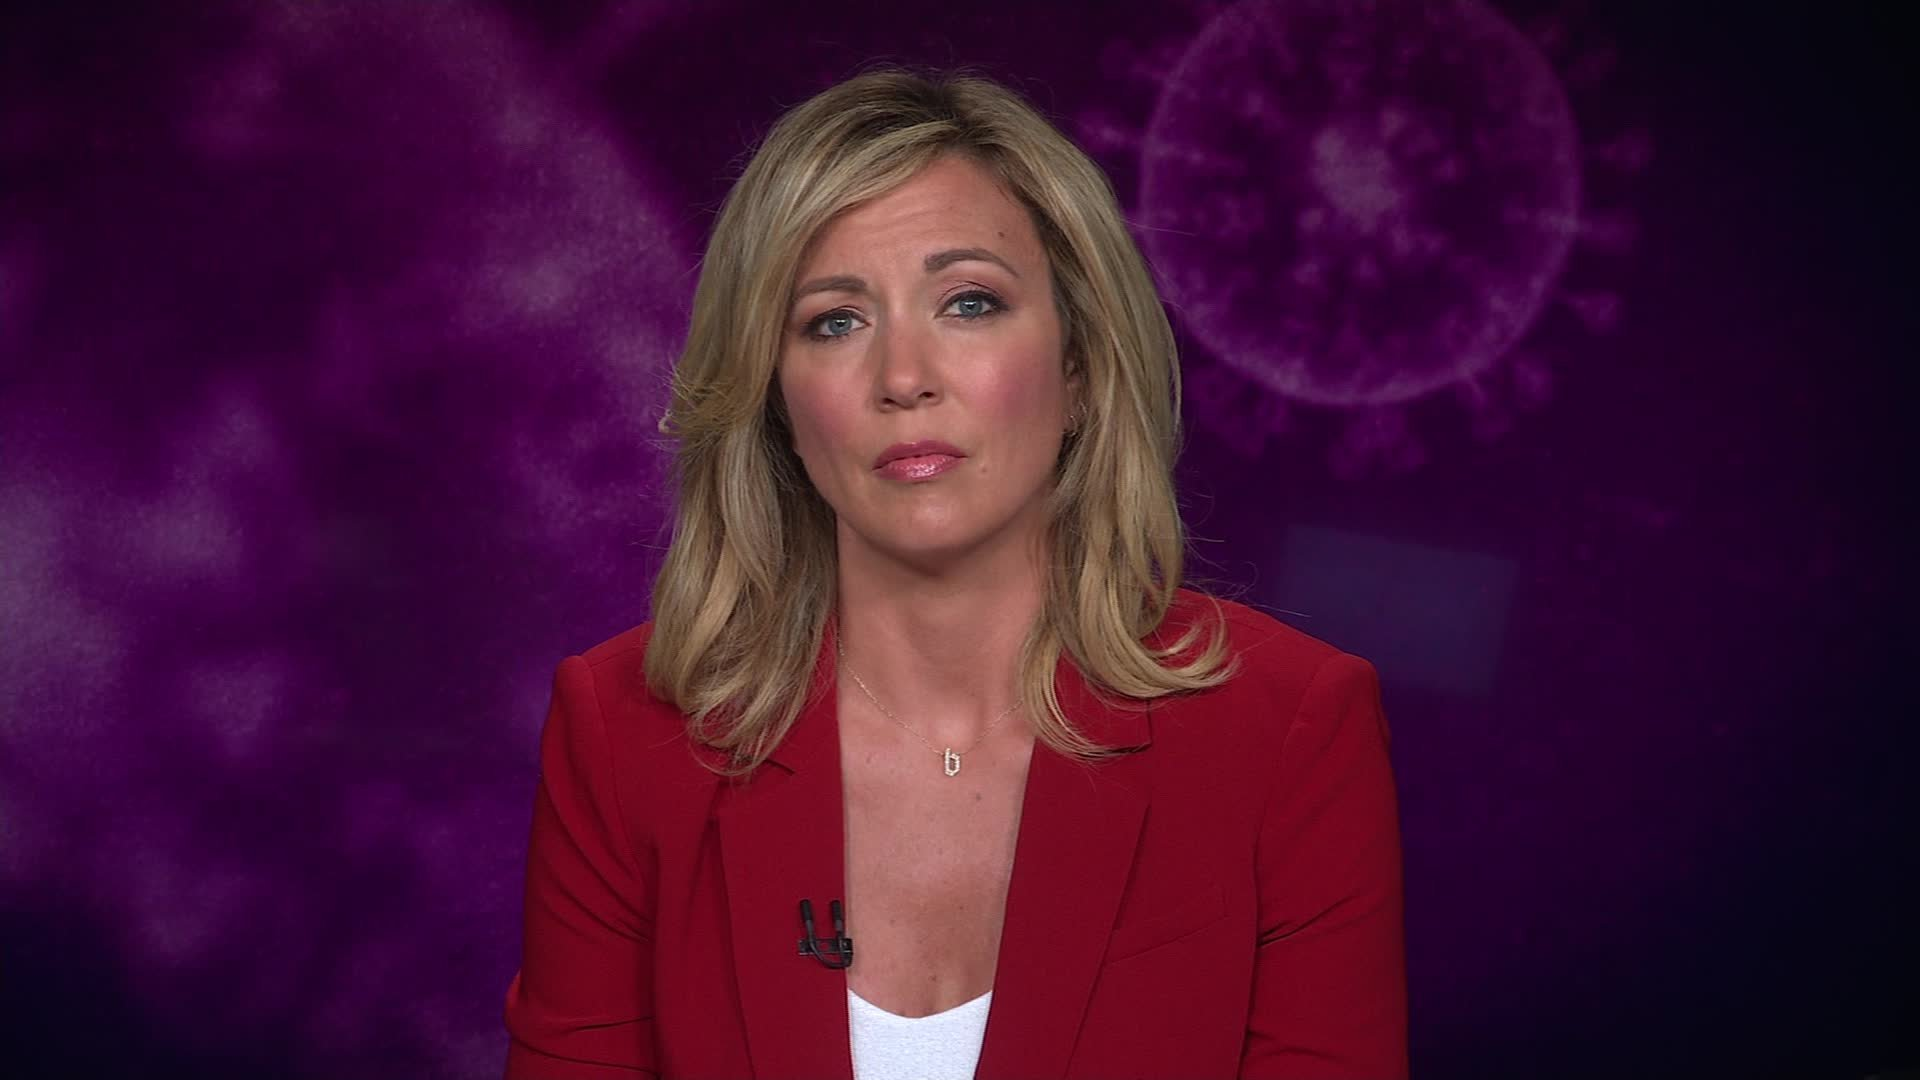 CNN's Brooke Baldwin tests positive for coronavirus